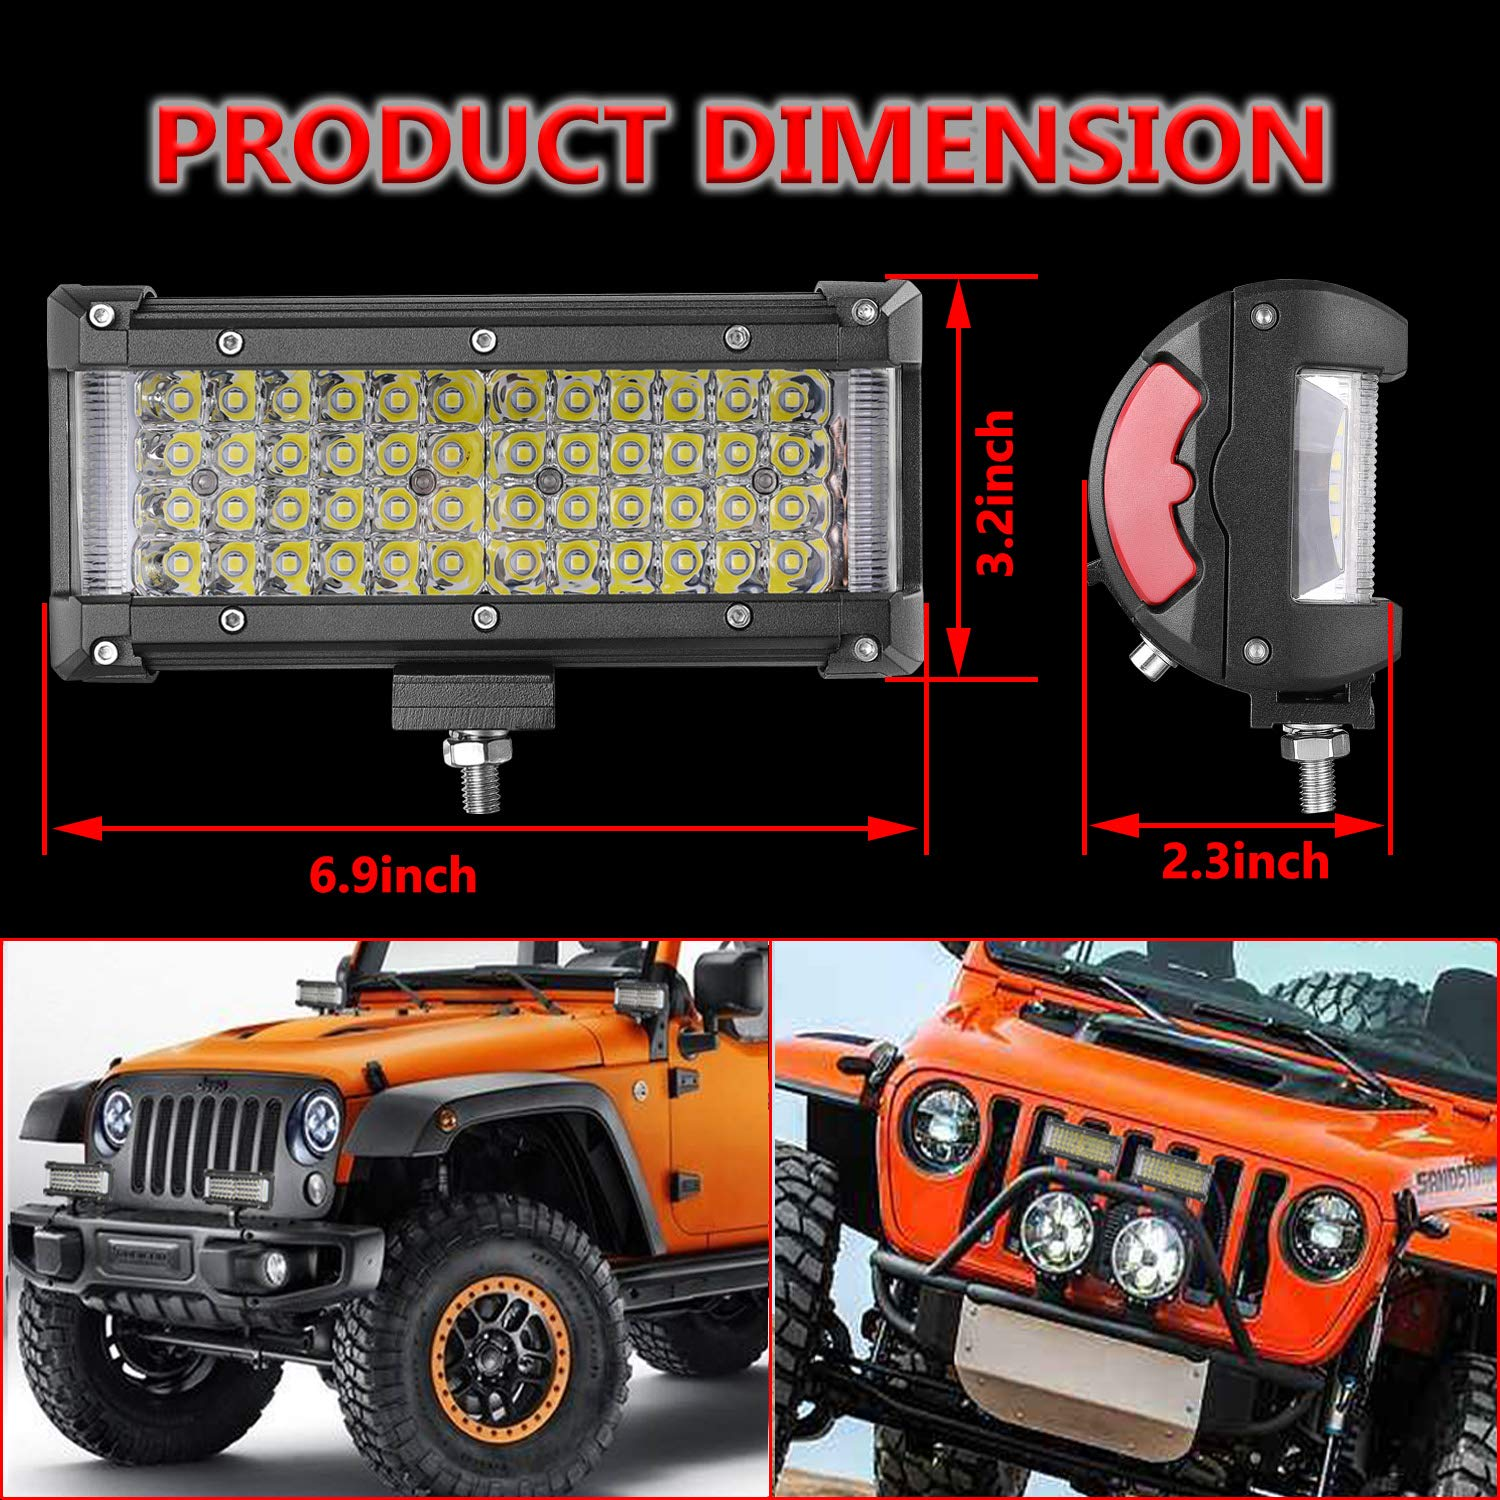 Led Light Bar Moso 7 Inch Dually Sided Side Shooter Sale 10pcs Universal Off Road Jeep Wiring Harness Kit Quad Row Spot Flood Combo Pods Cree Fog Lights Waterproof